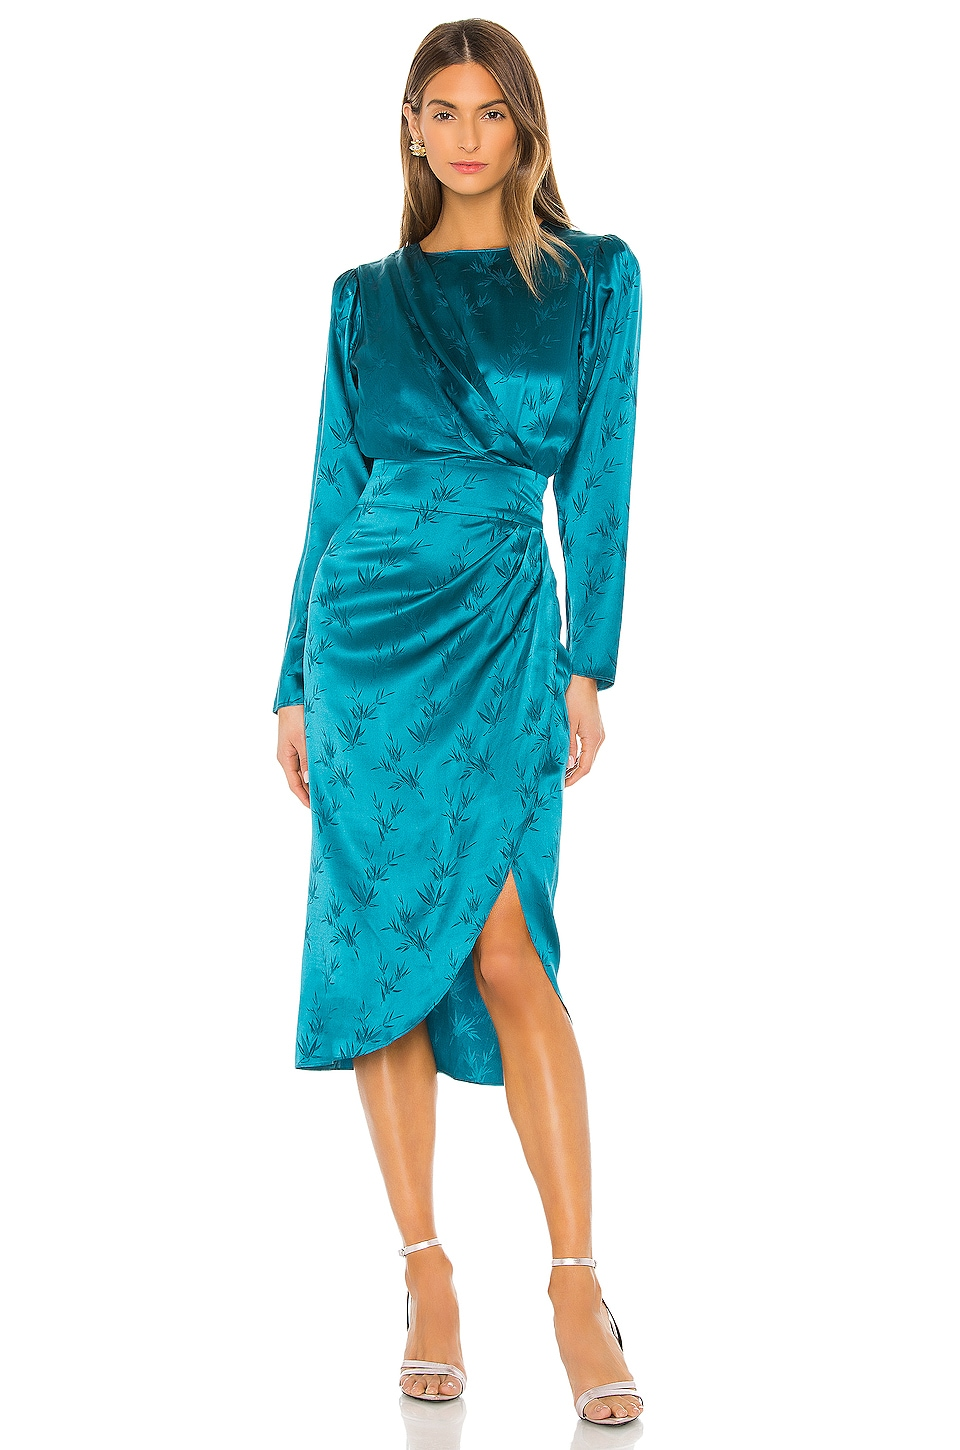 Ronny Kobo Jade Dress in Teal